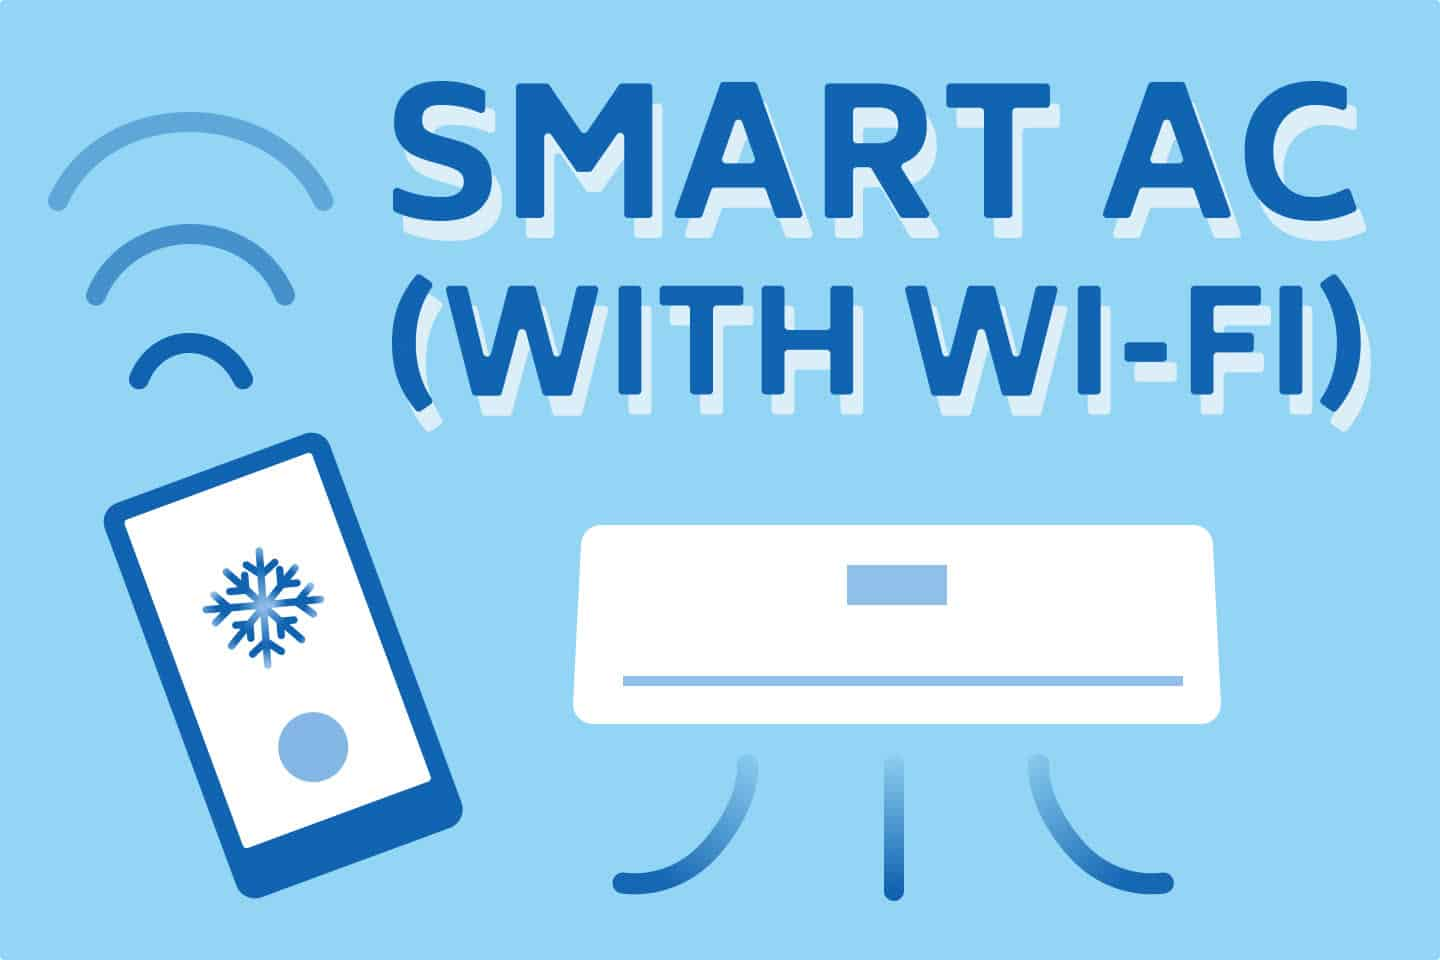 ❄️ Smart Air Conditioners (With Wi-Fi)